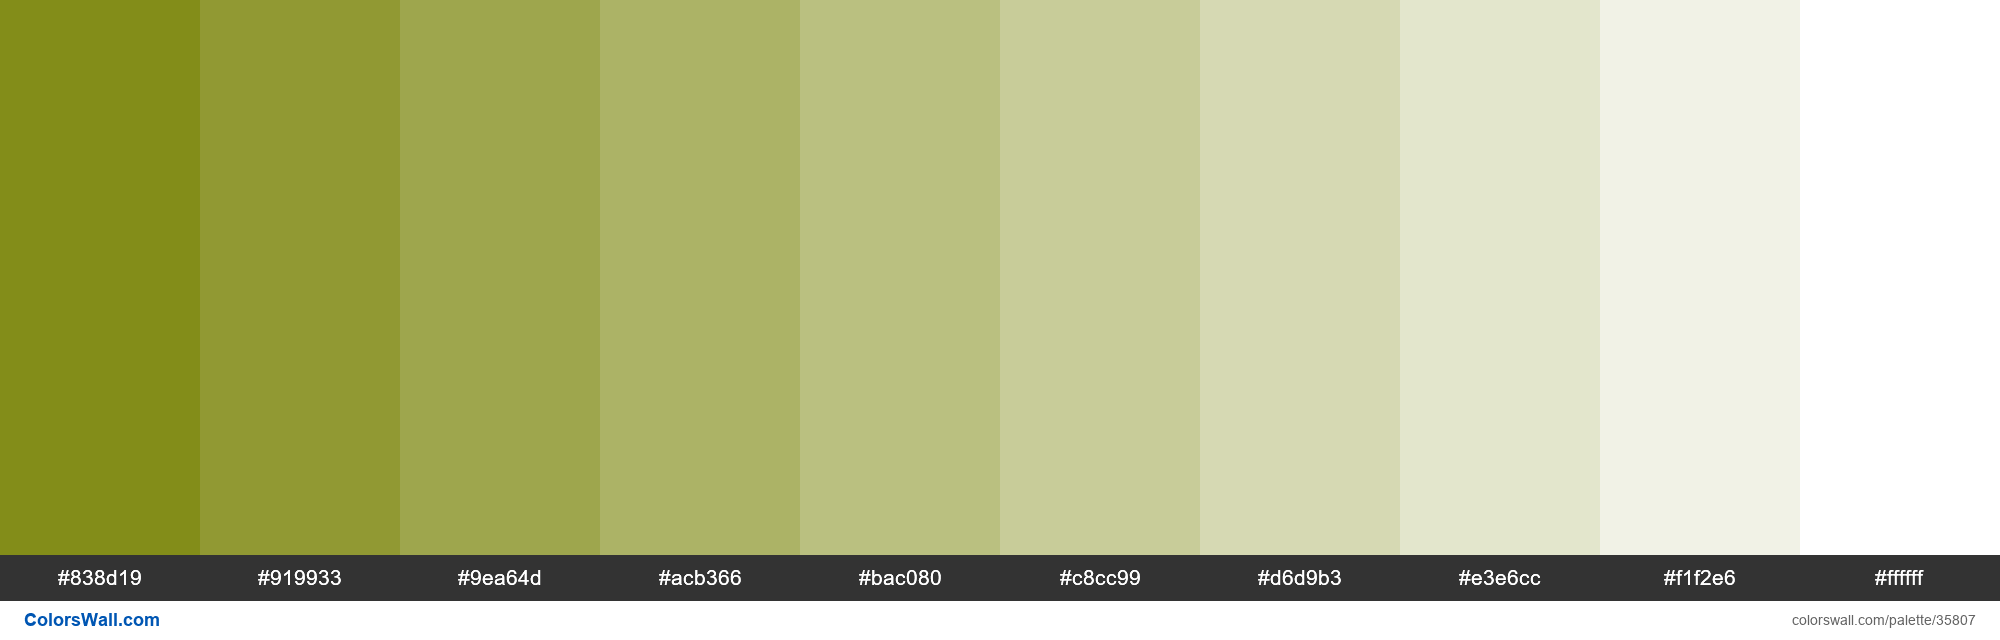 Tints XKCD Color shit green #758000 hex - #35807